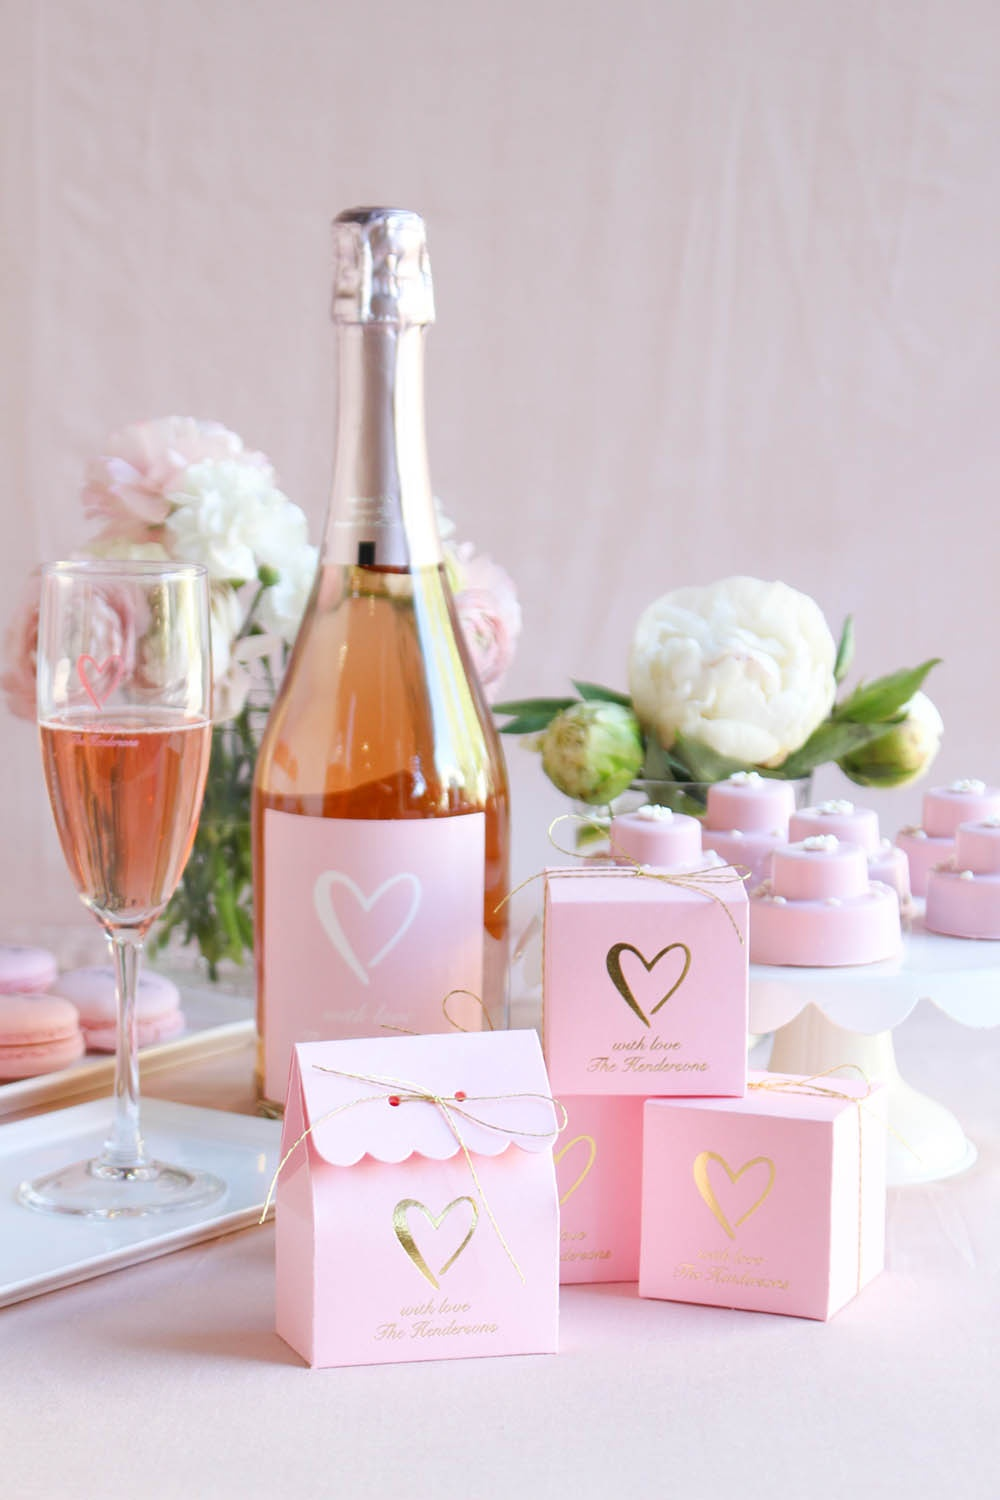 pink wedding, heart themed wedding, classic wedding, pink and gold wedding, blush pink wedding, classic heart wedding, rose, pink wine, personalized wine bottle, personalized wine bottle label, custom wine bottle, custom wine bottle label, pink favor boxes, personalized favor boxes, pink packaging, pink favor packaging